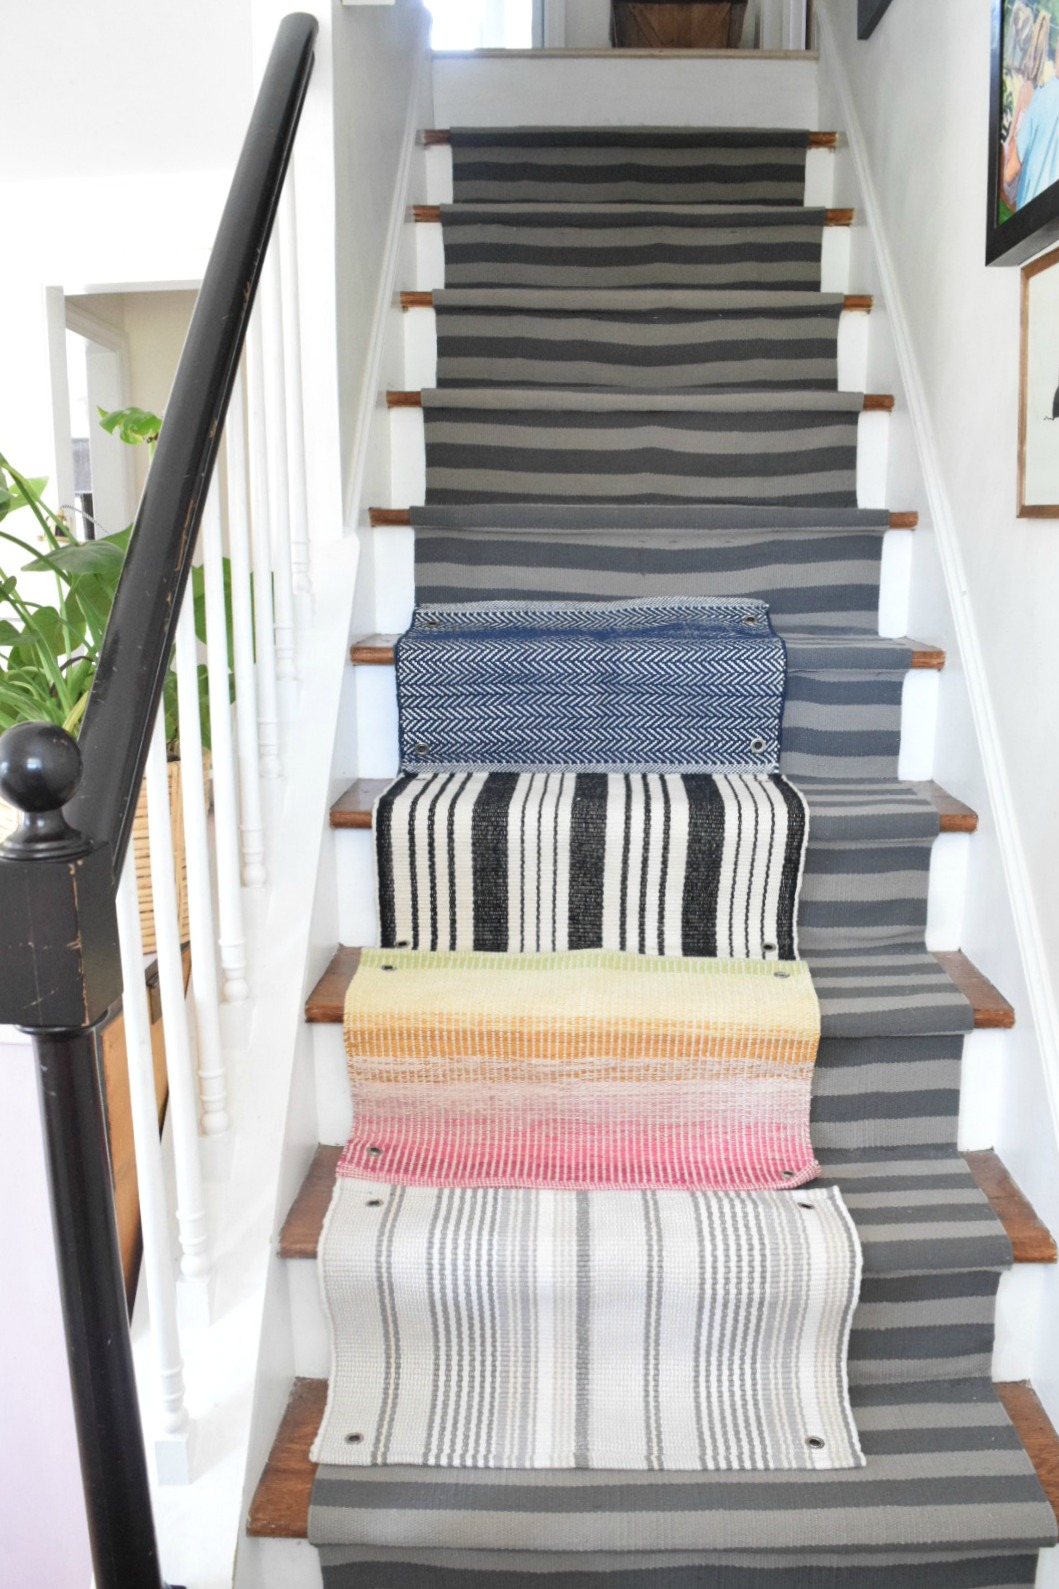 Stairs Rug Runners Learn From Our Mistakes When Installing A Stair Runner Nesting